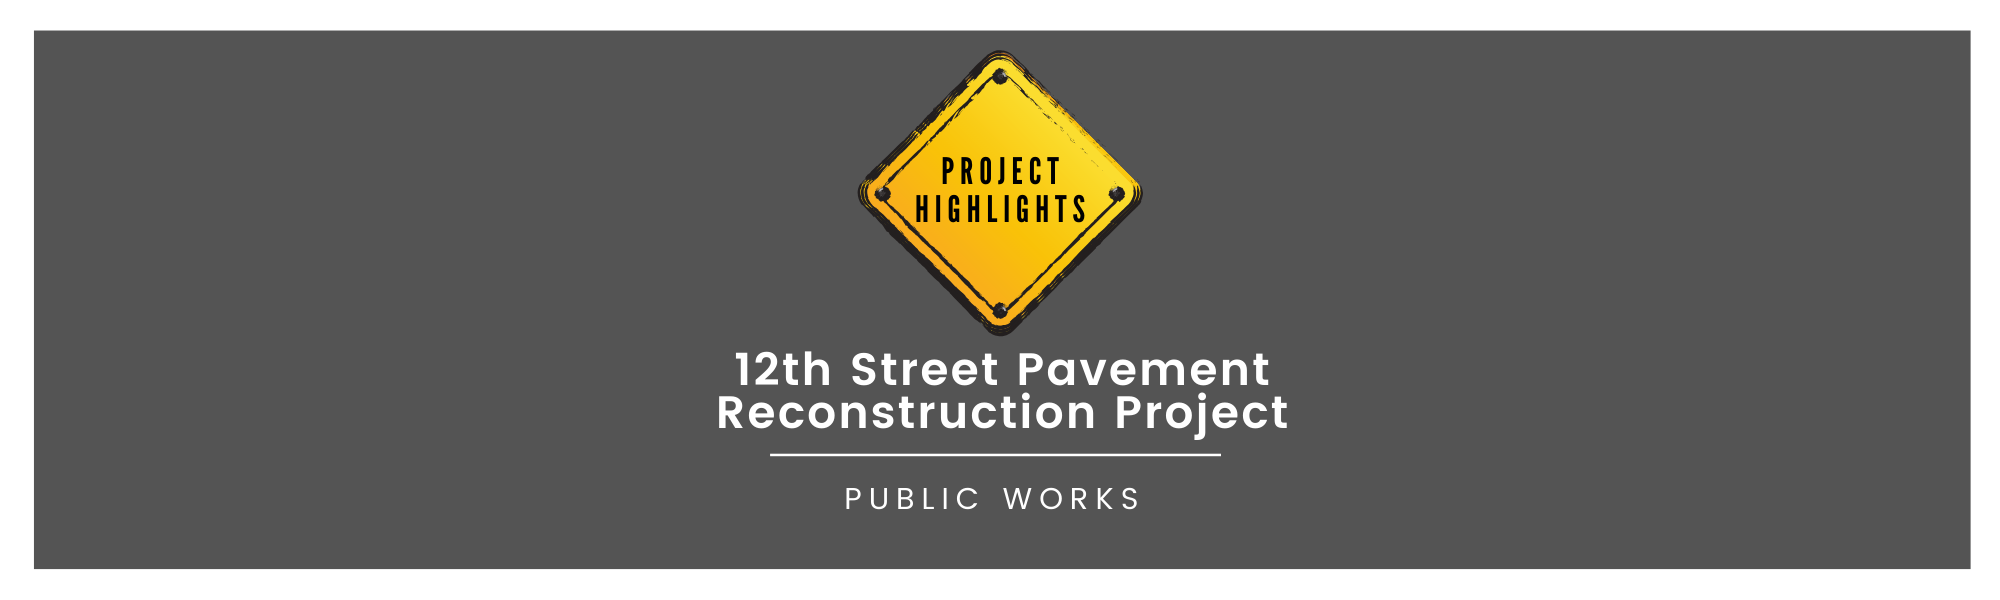 12th Street Pavement Reconstruction Project